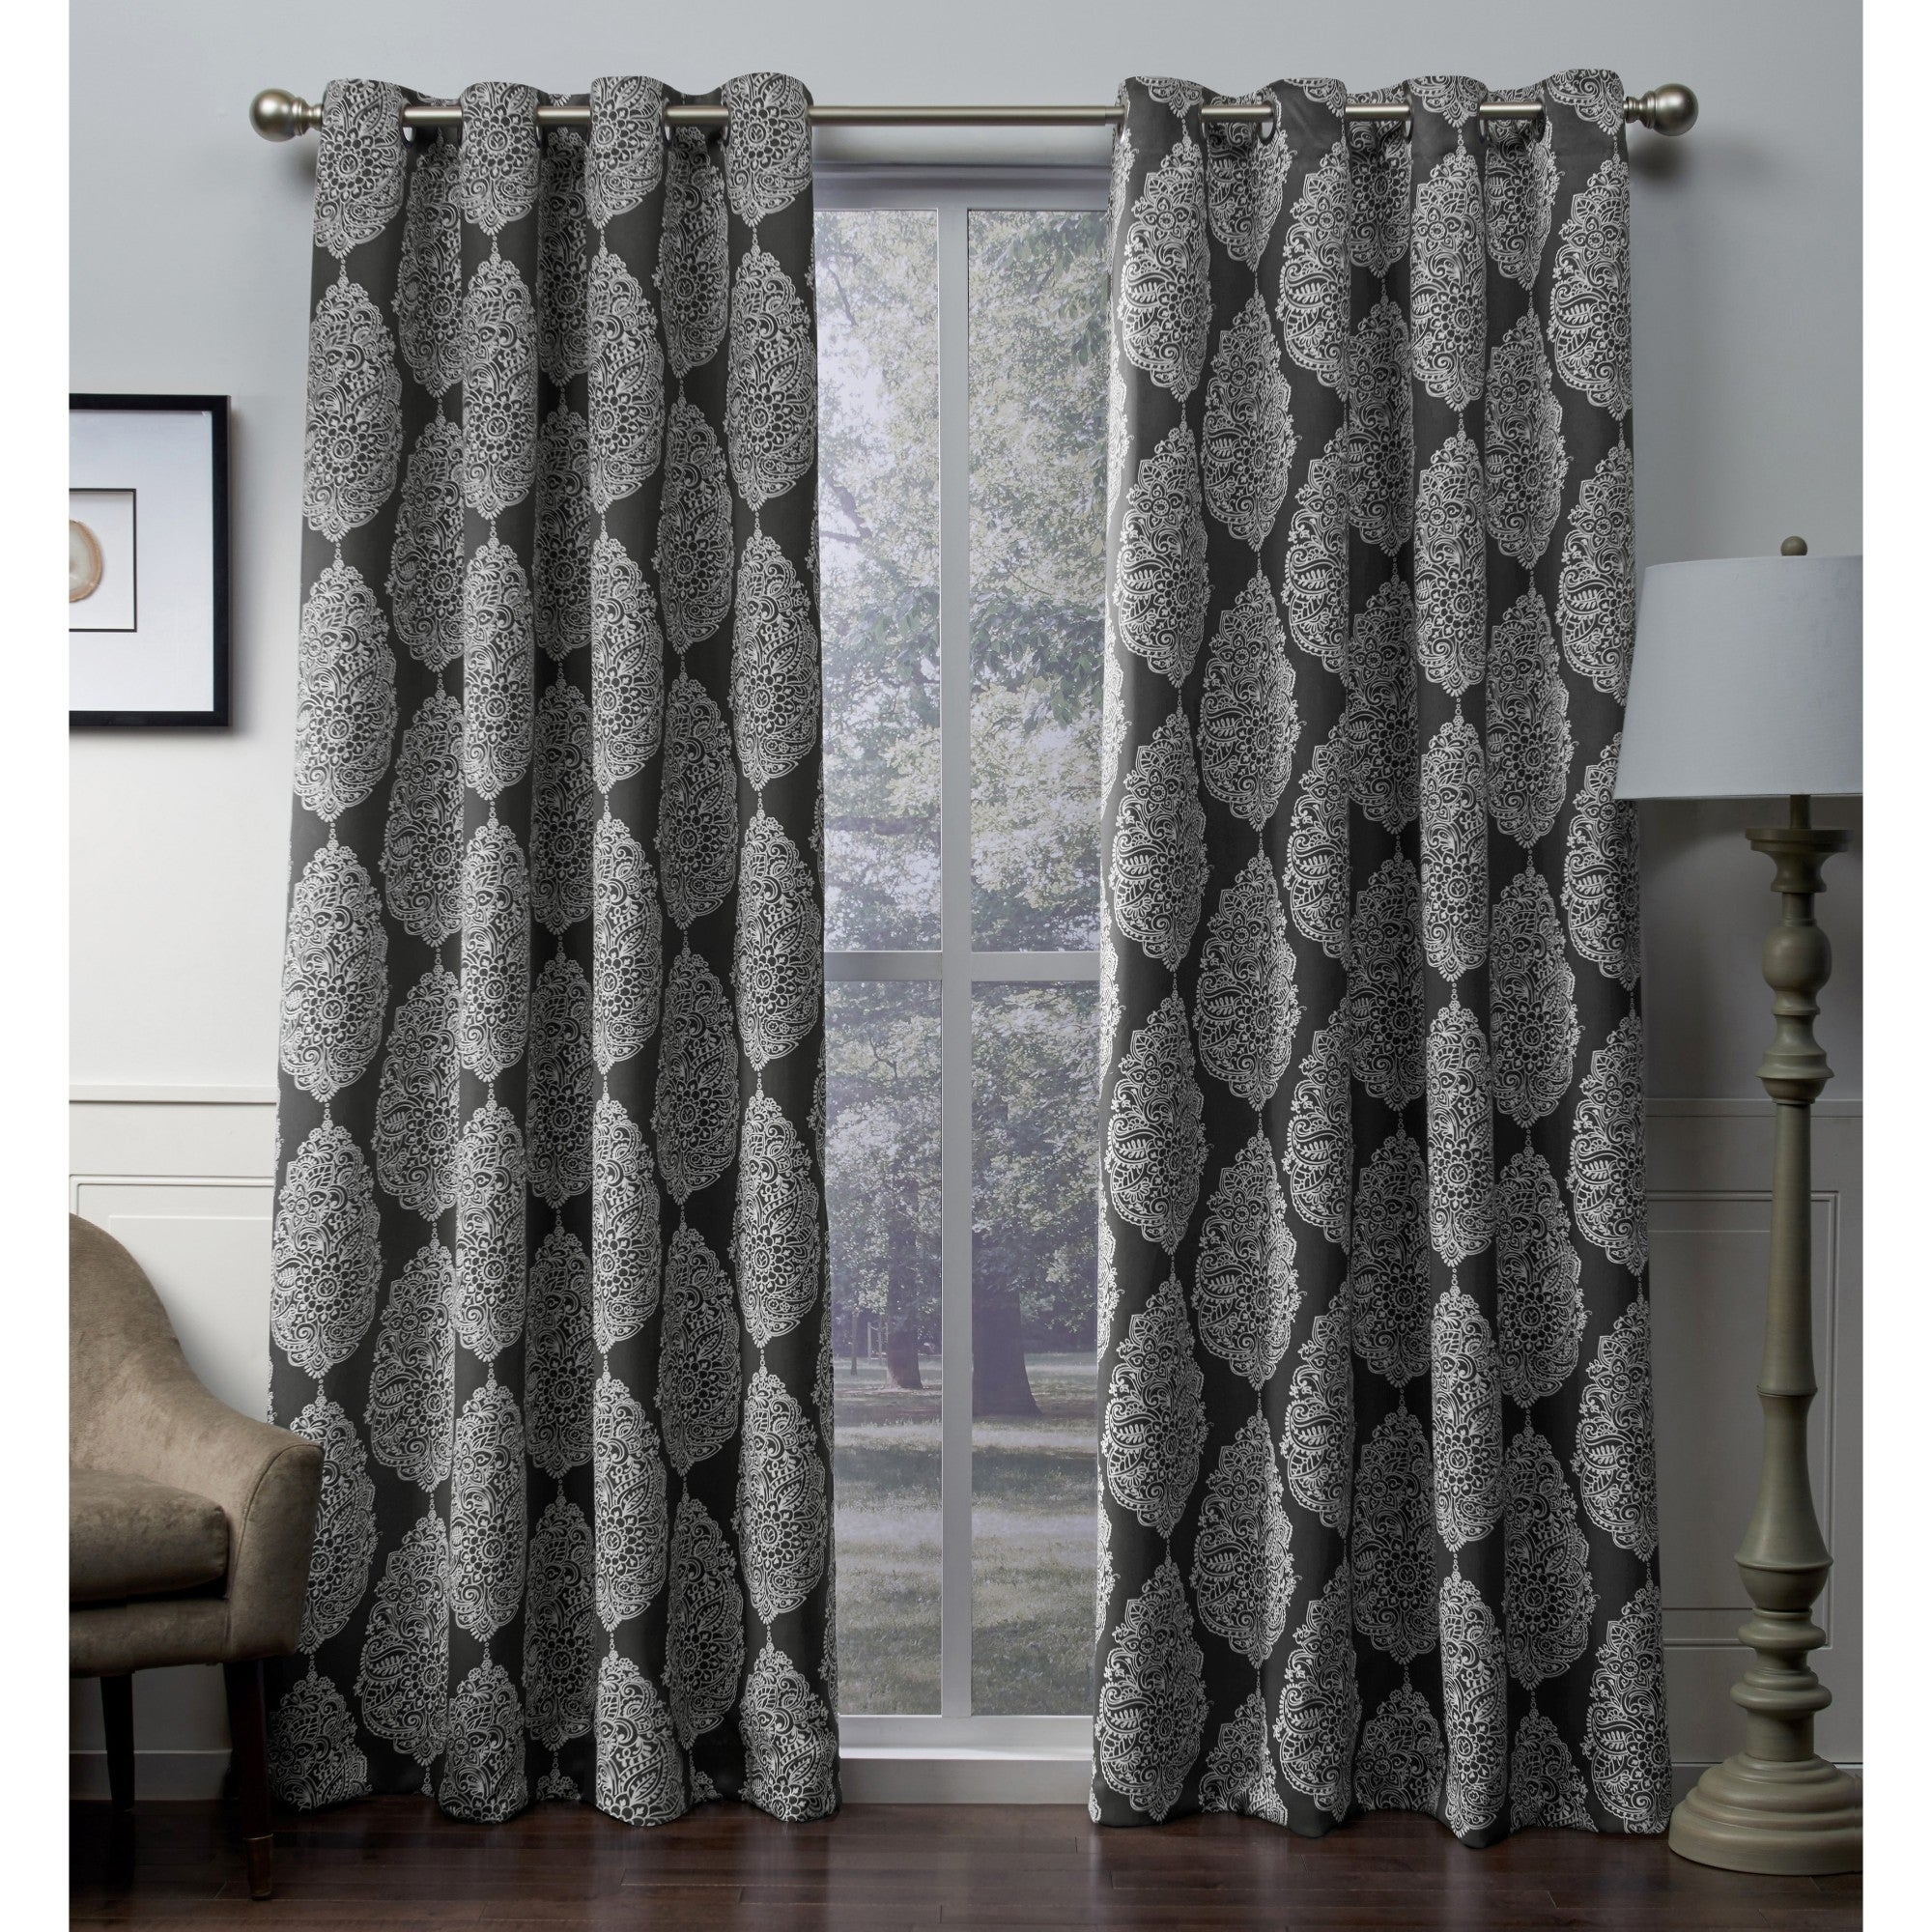 Details About Ati Home Queensland Sateen Blackout Grommet Top Curtain Within Sateen Woven Blackout Curtain Panel Pairs With Pinch Pleat Top (View 10 of 20)